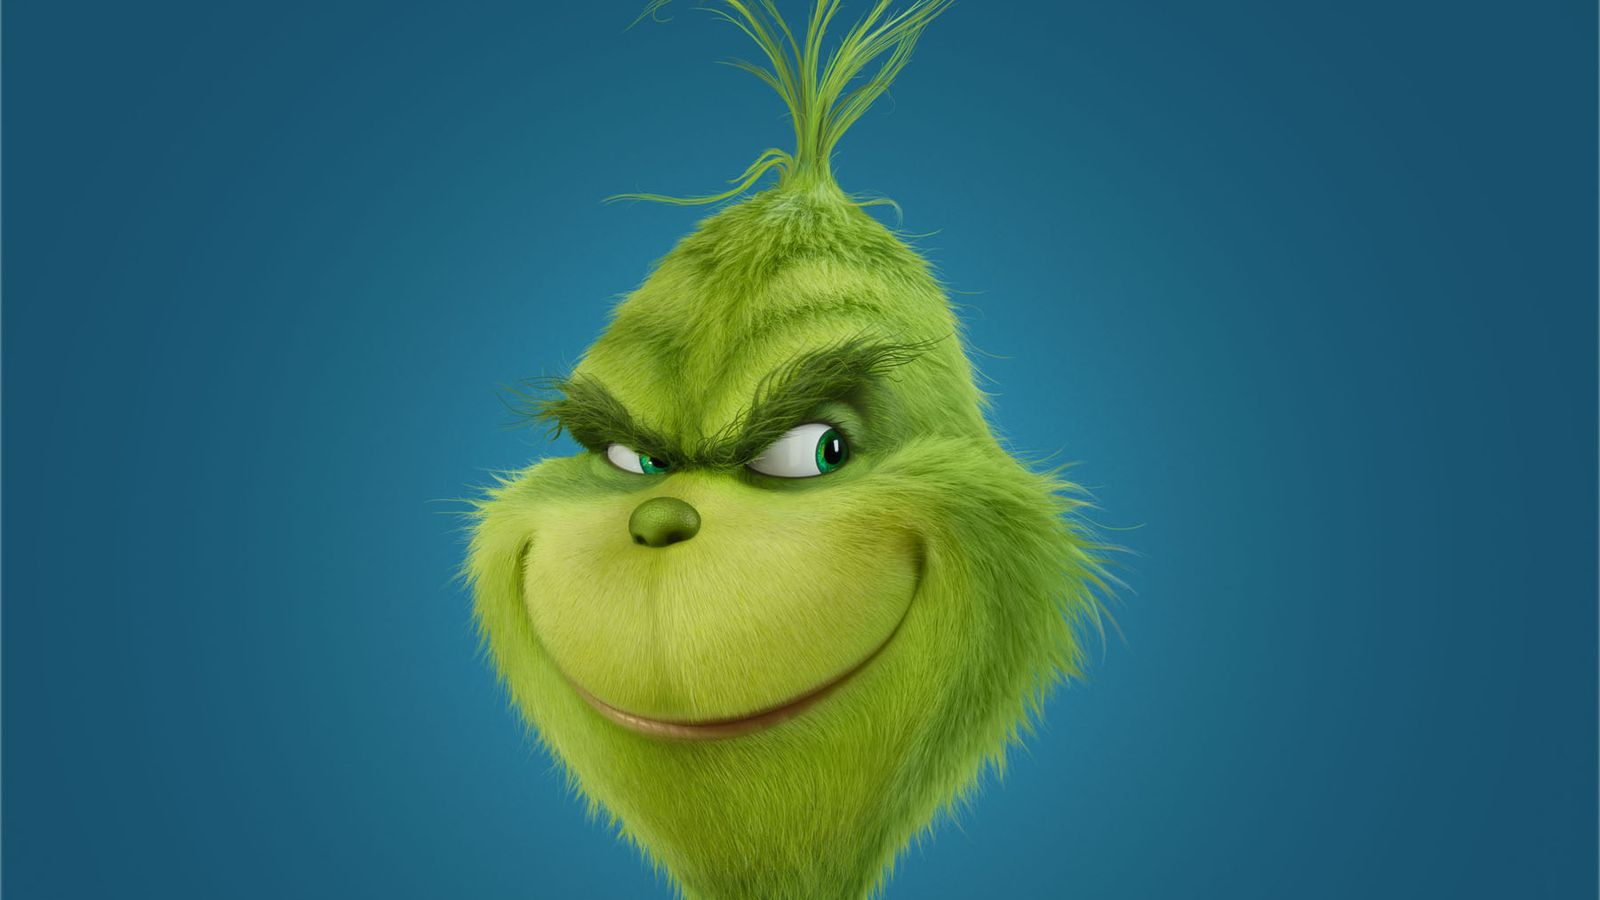 The Grinch: What Happened AFTER He Stole Christmas? | HuffPost